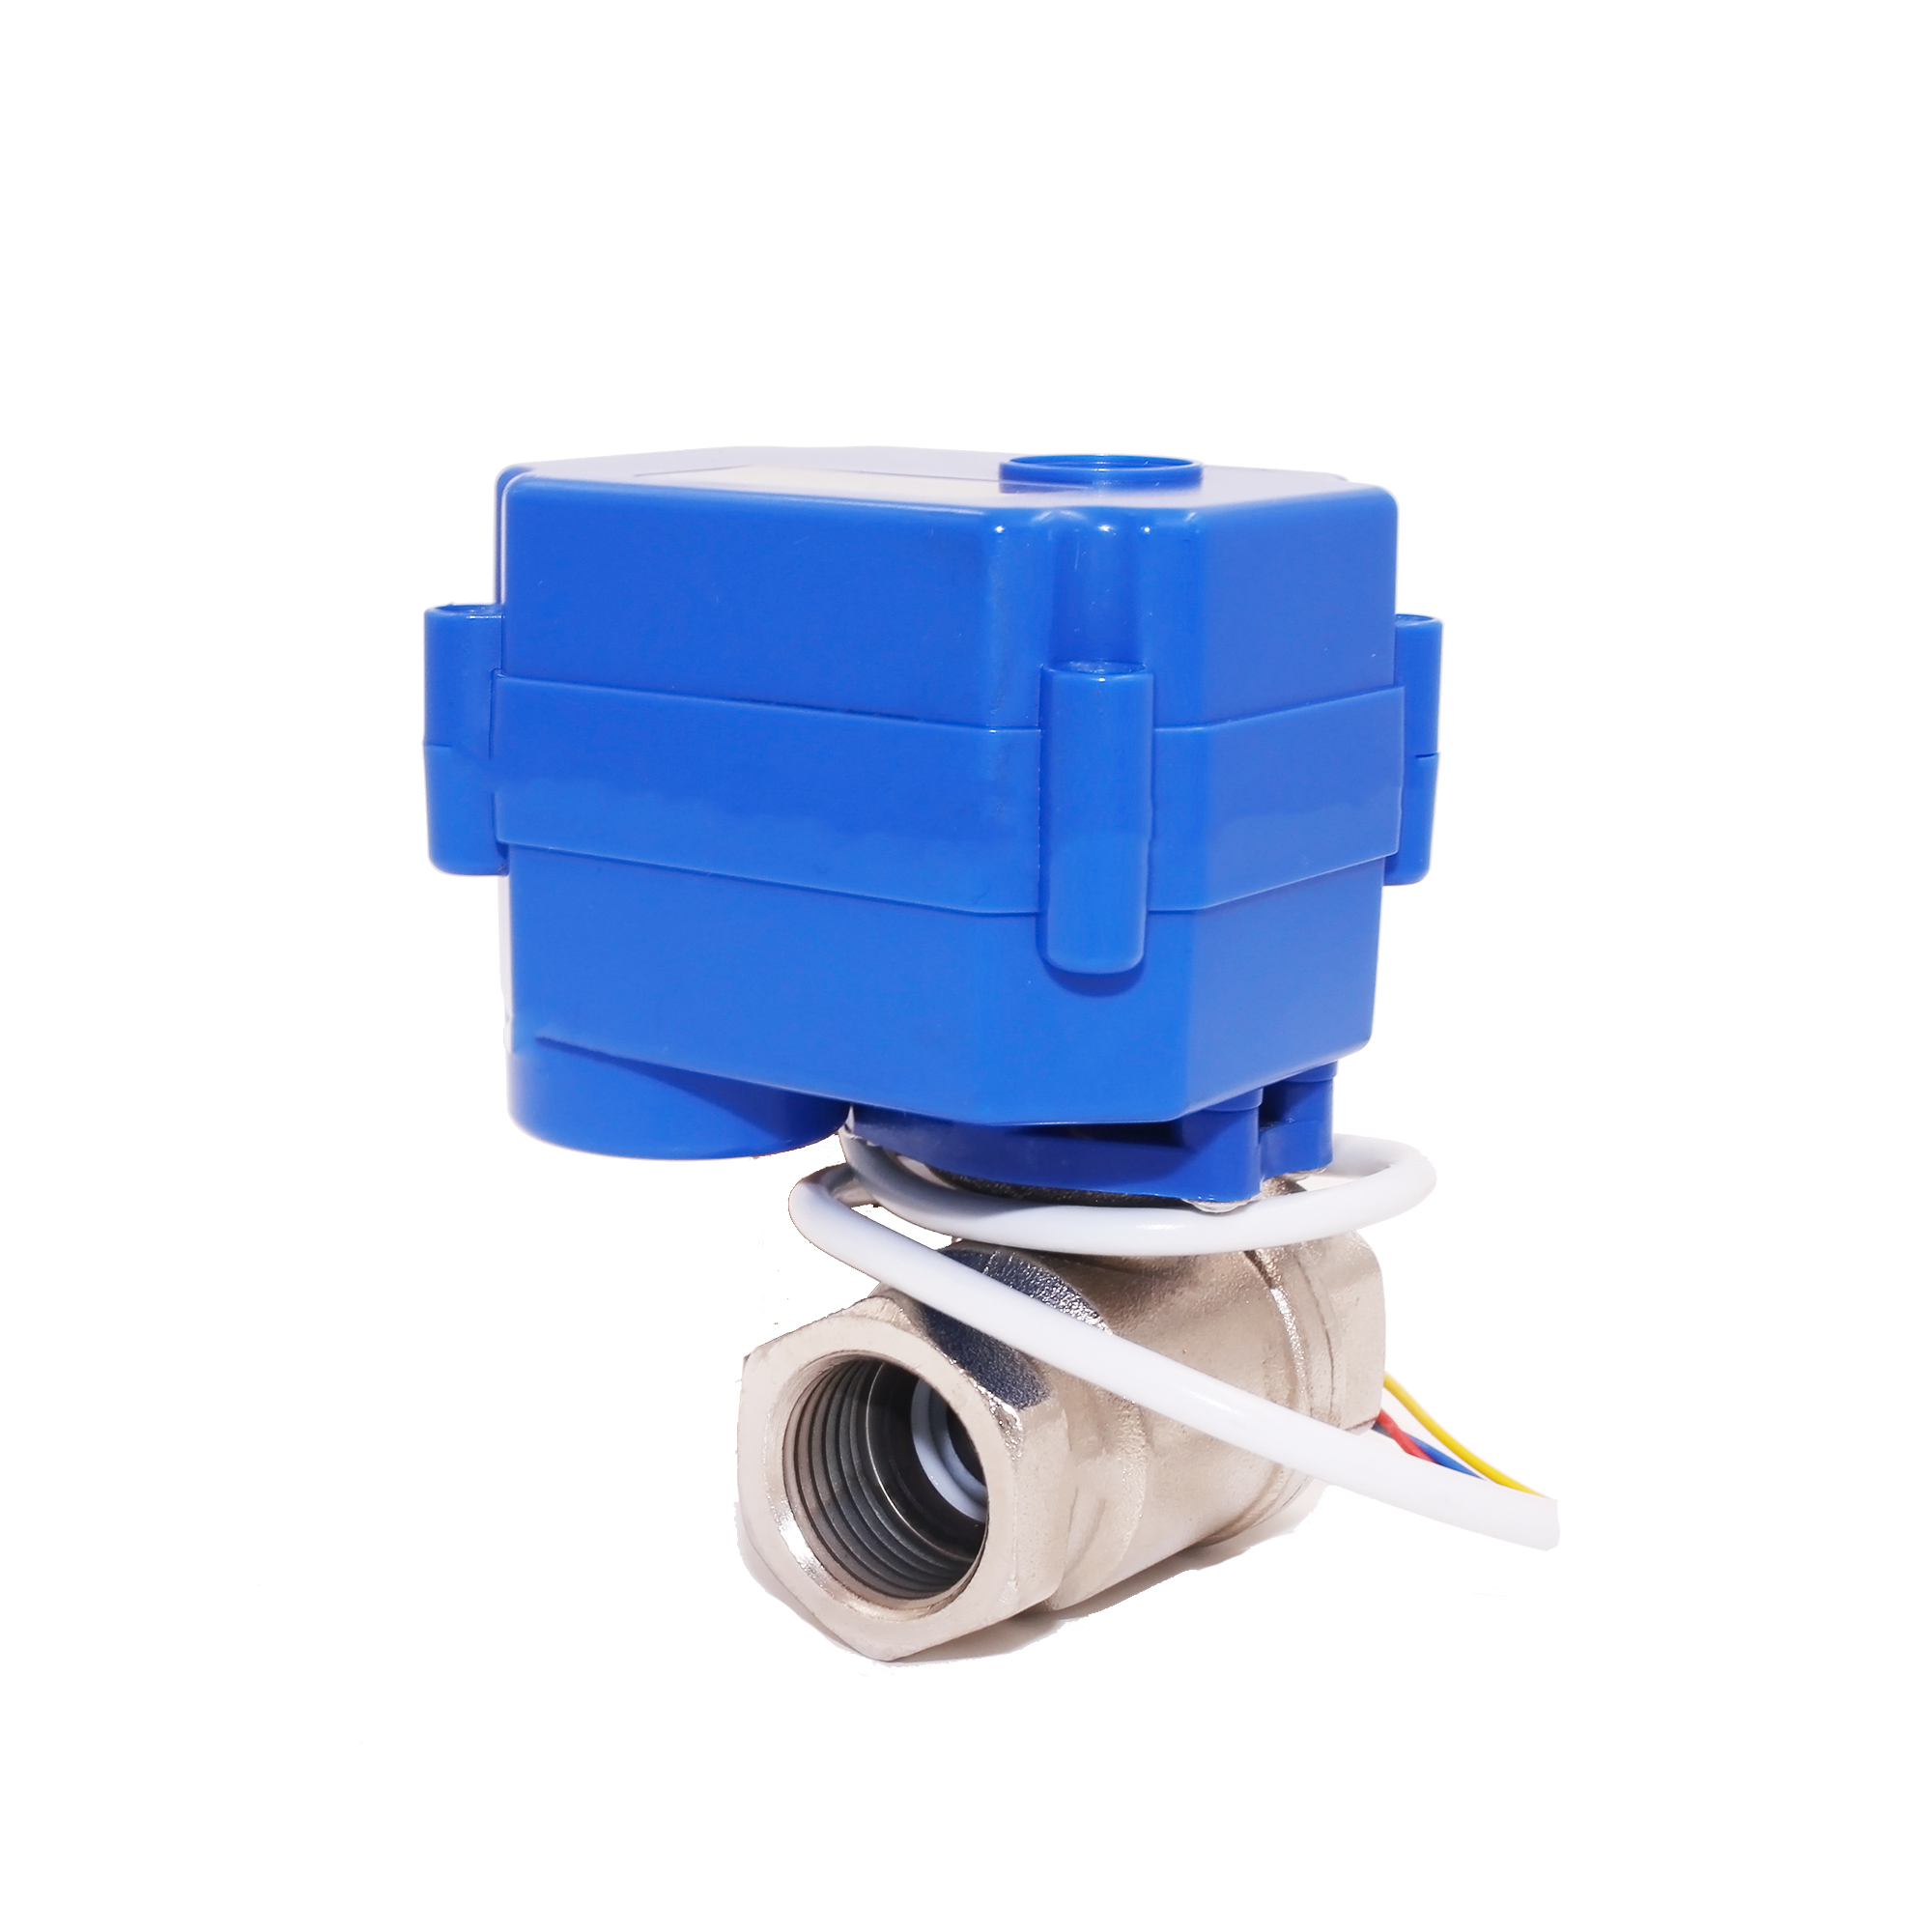 motorized ball valve DN25, 2 way, 12V electrical valve for Air-warm valve.HVAC and fire works